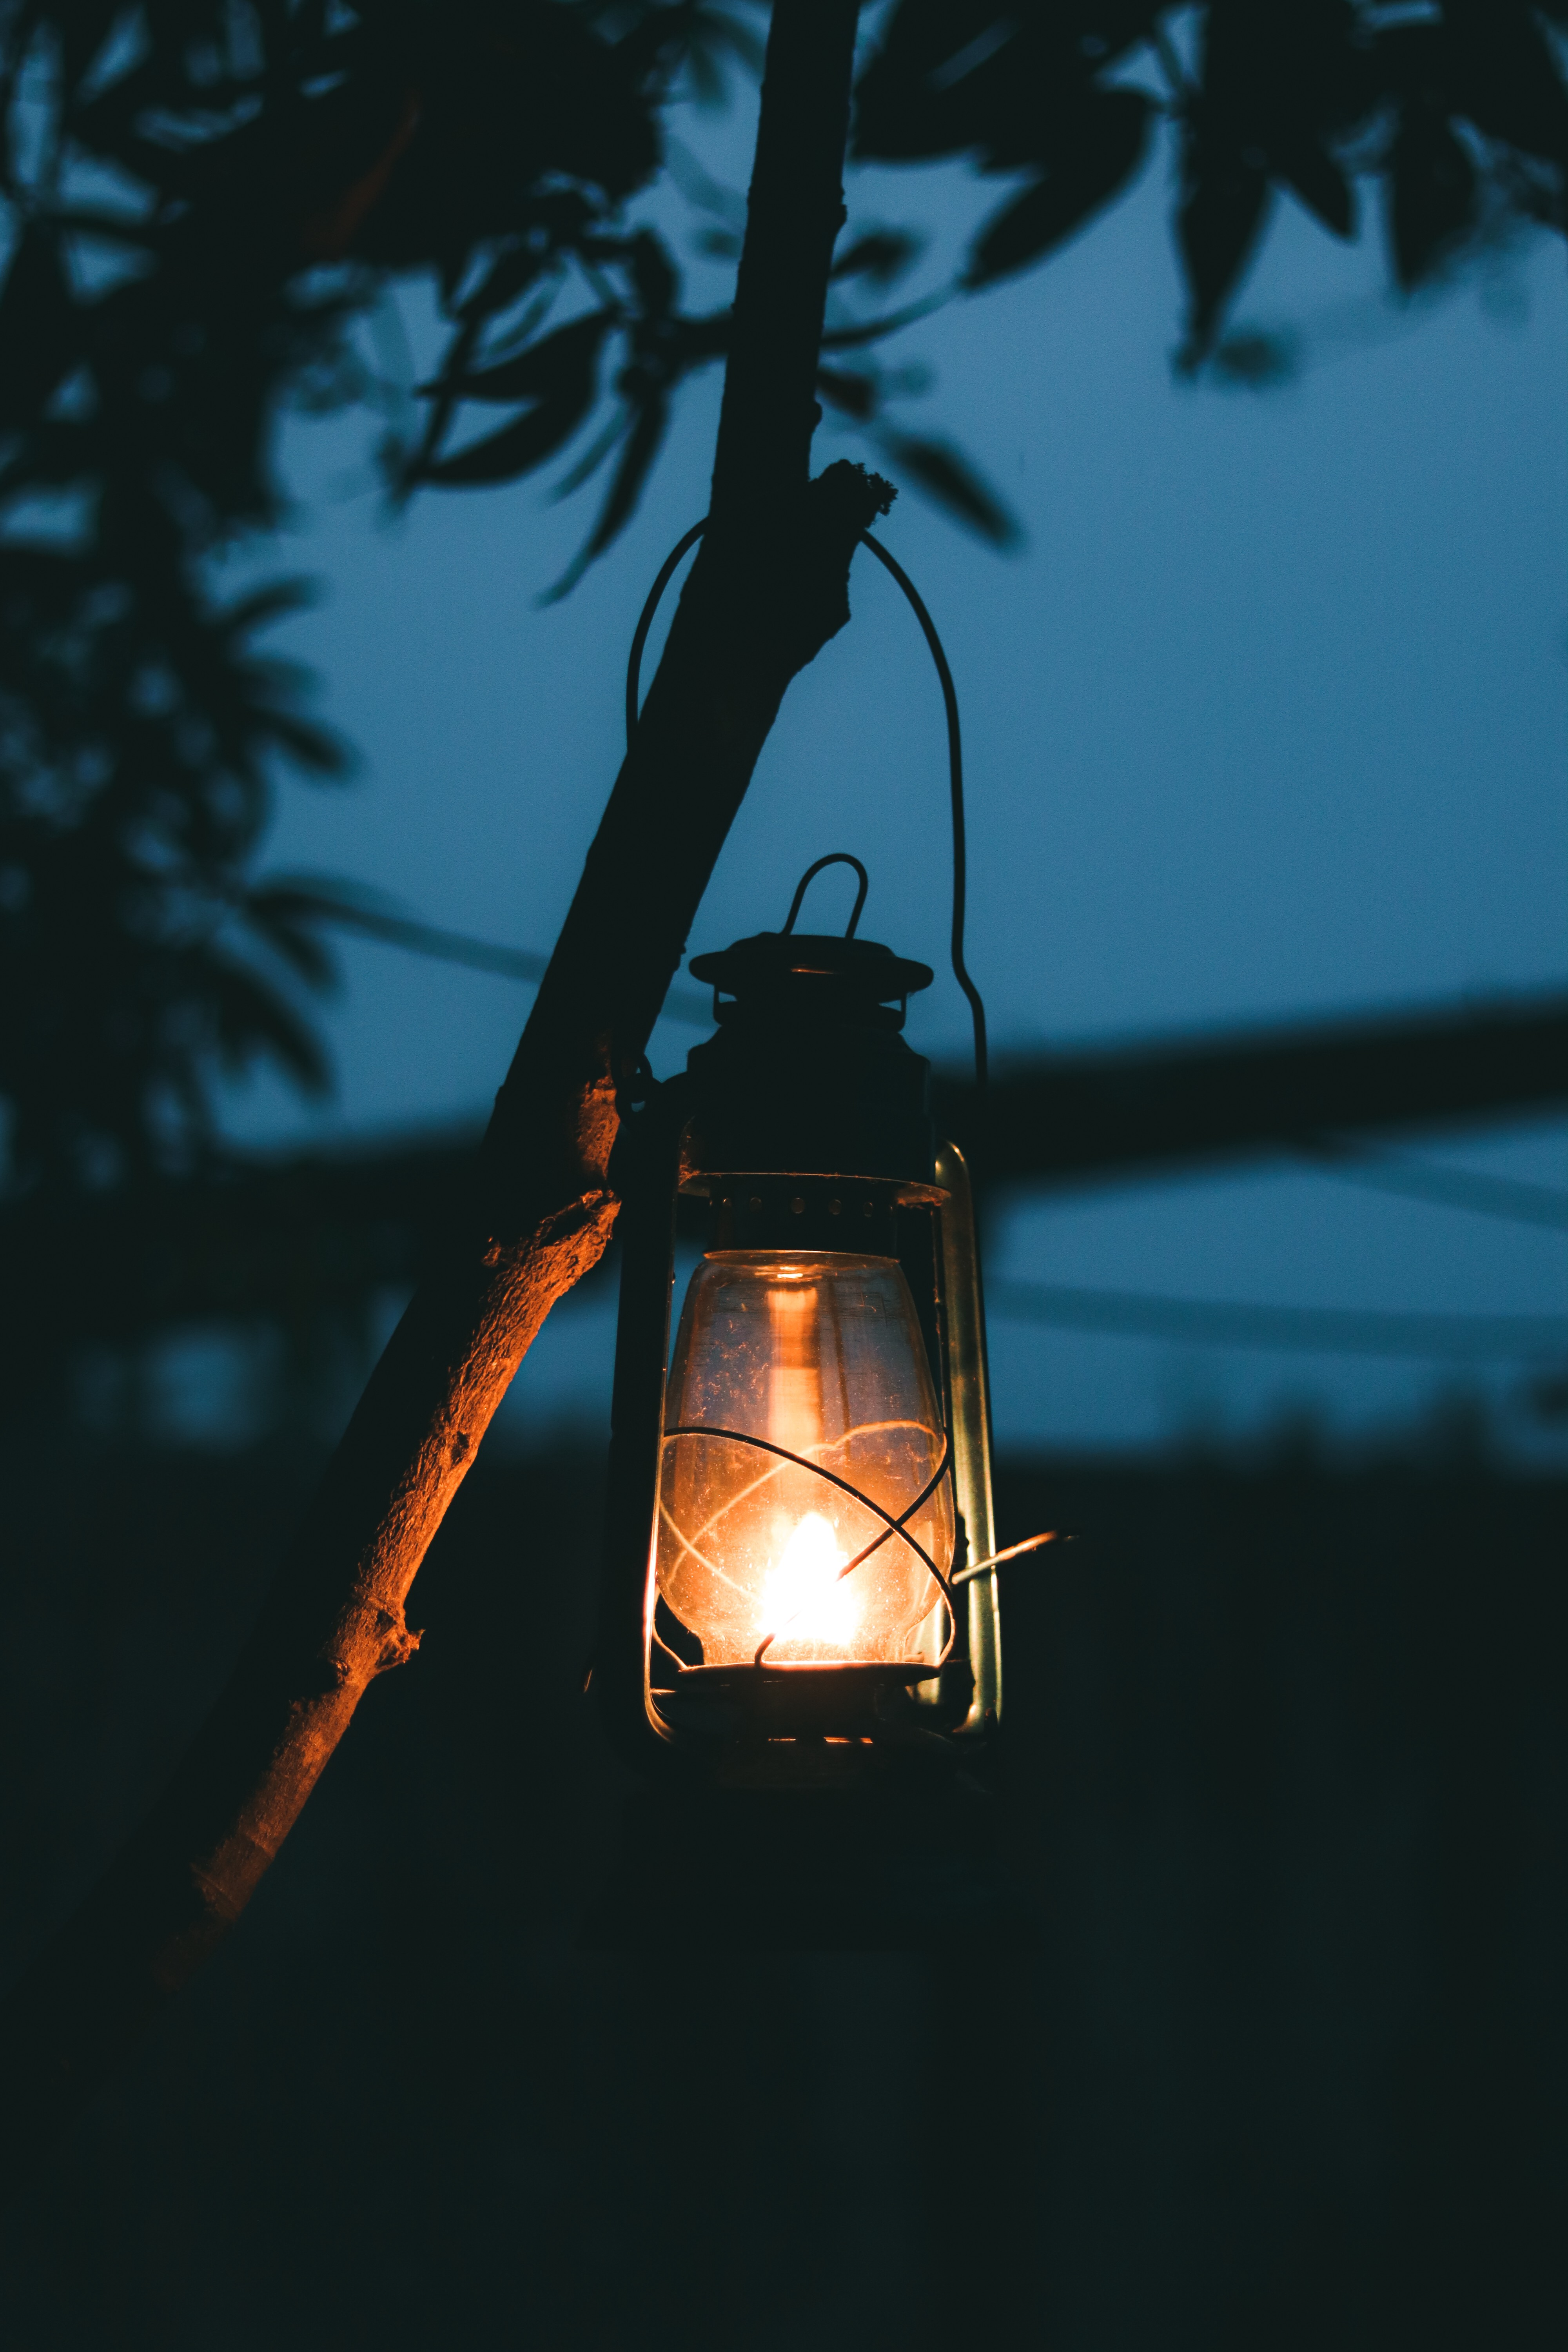 the image is that of a lantern hung on the branch of a tree shining its light into a dark night.